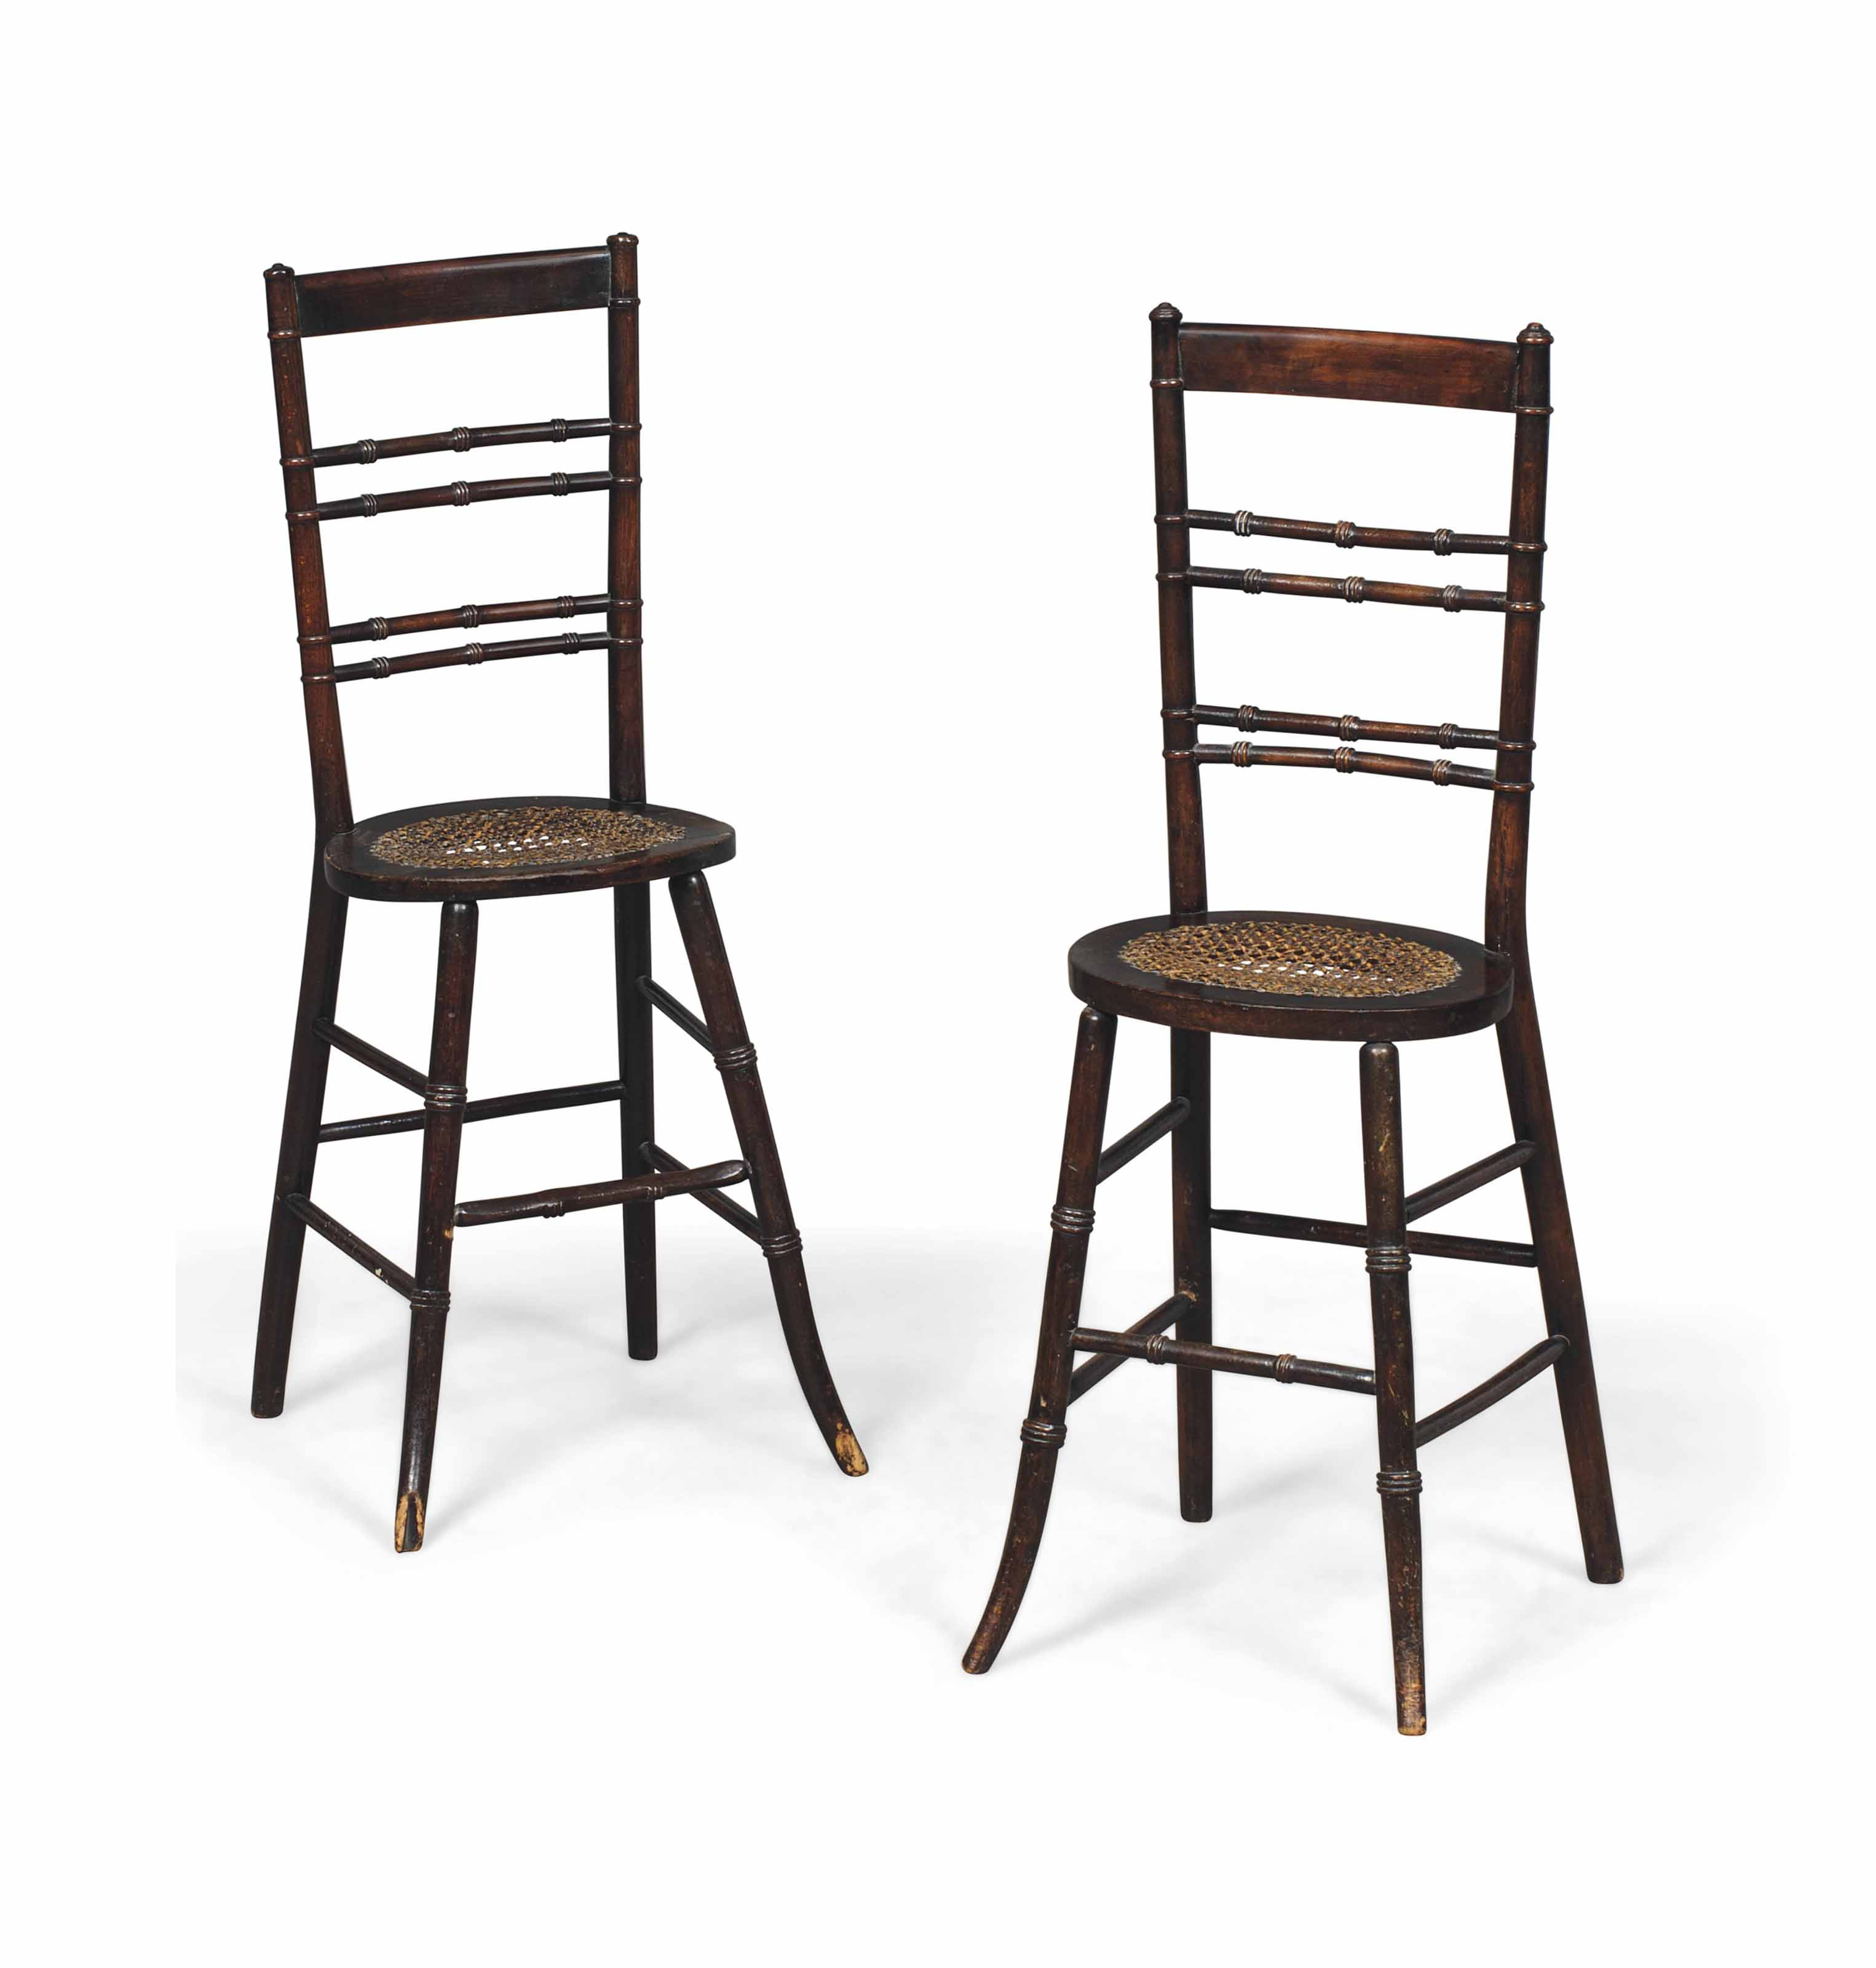 A PAIR OF REGENCY BEECH CORRECTION CHAIRS